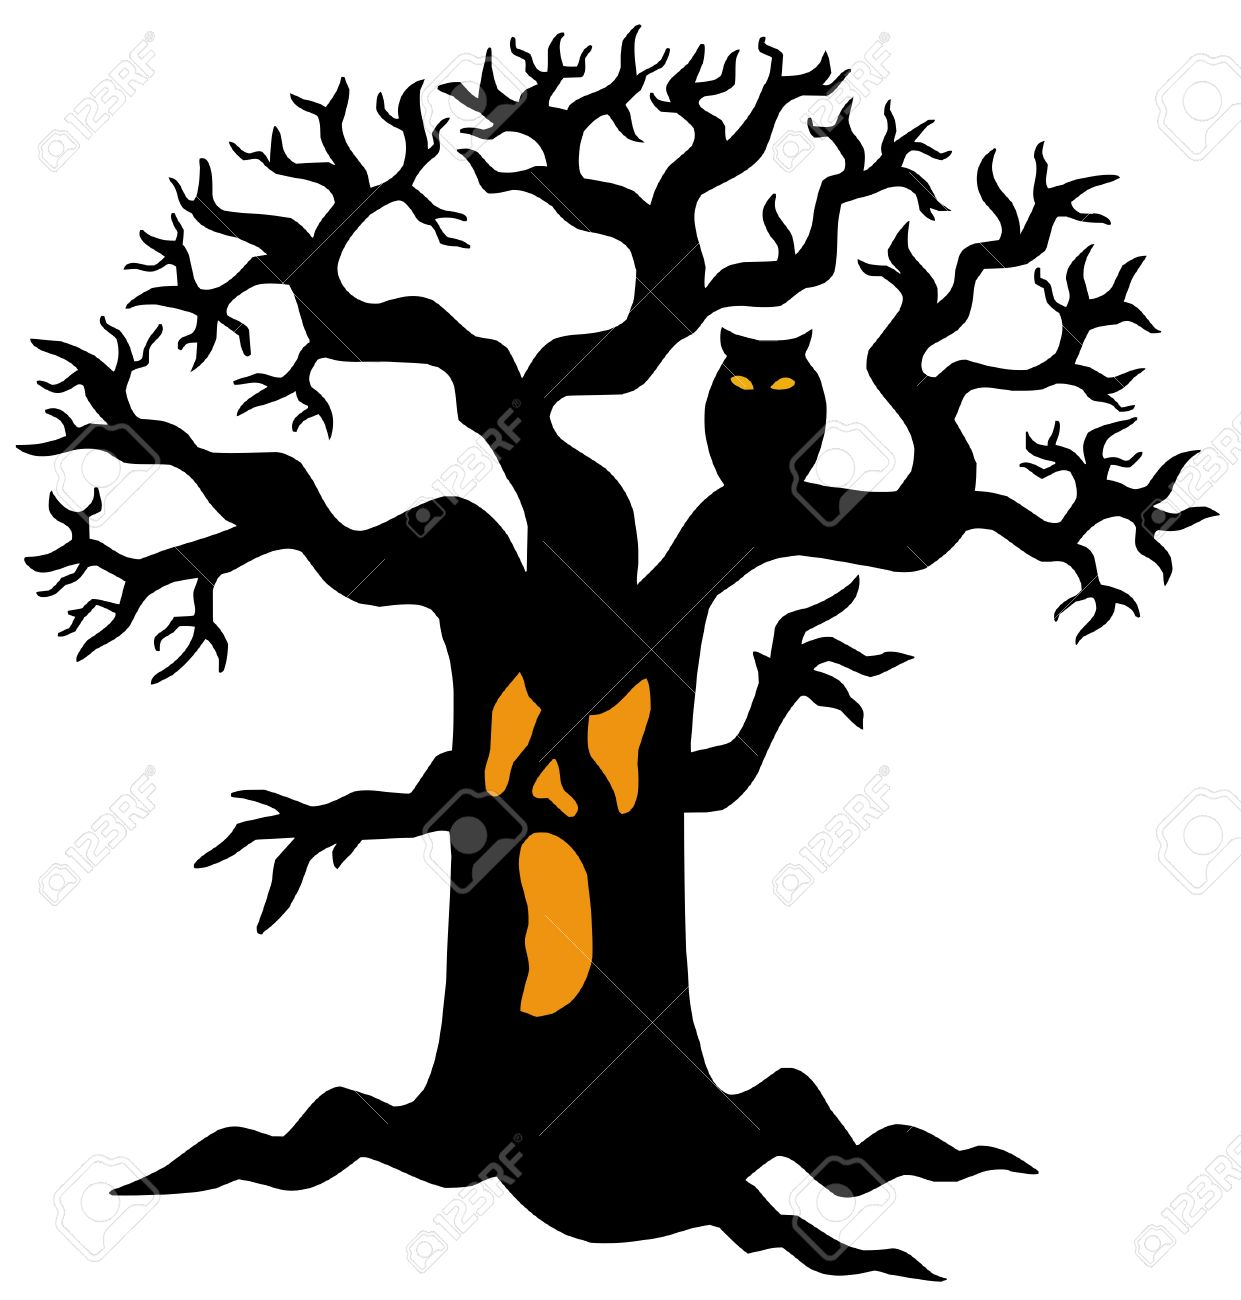 spooky tree silhouette vector illustration royalty free cliparts rh 123rf com Creepy Tree Art spooky halloween tree clipart